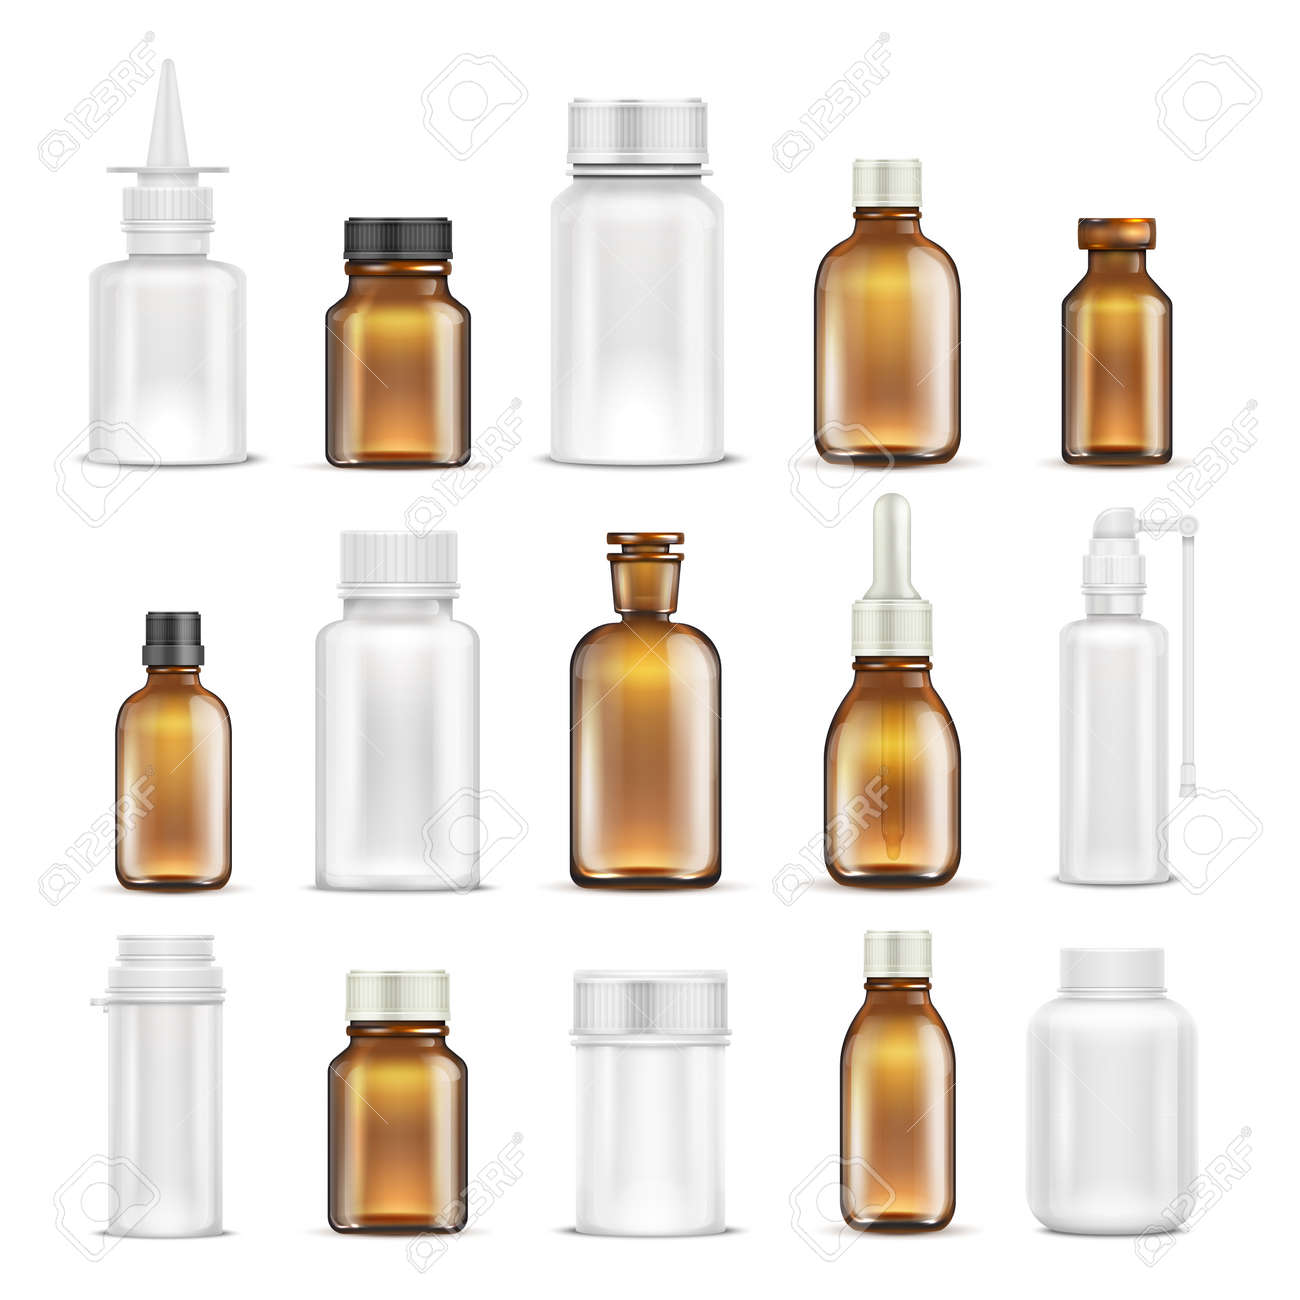 Medicine glass and plastic blank bottles isolated vector set. Bottle medicine container for care health, healthcare vitamin pharmaceutical illustration - 167441094